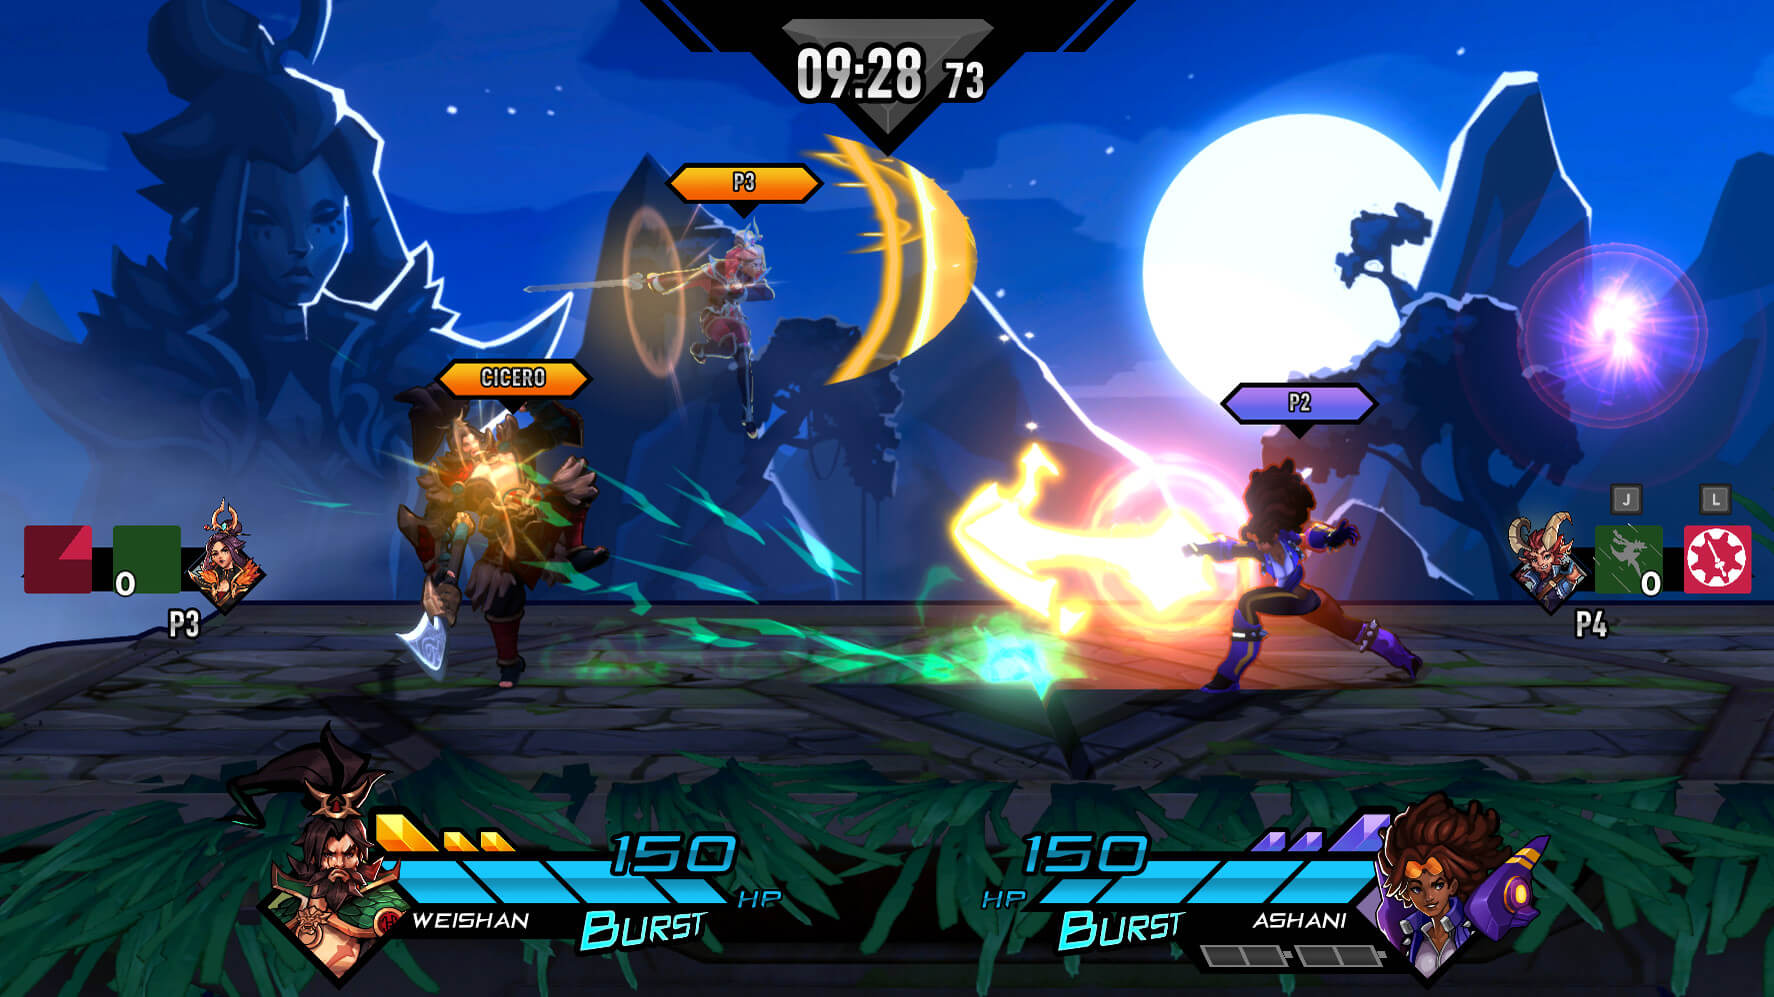 Get ready to rumble with friends in several multiplayer options